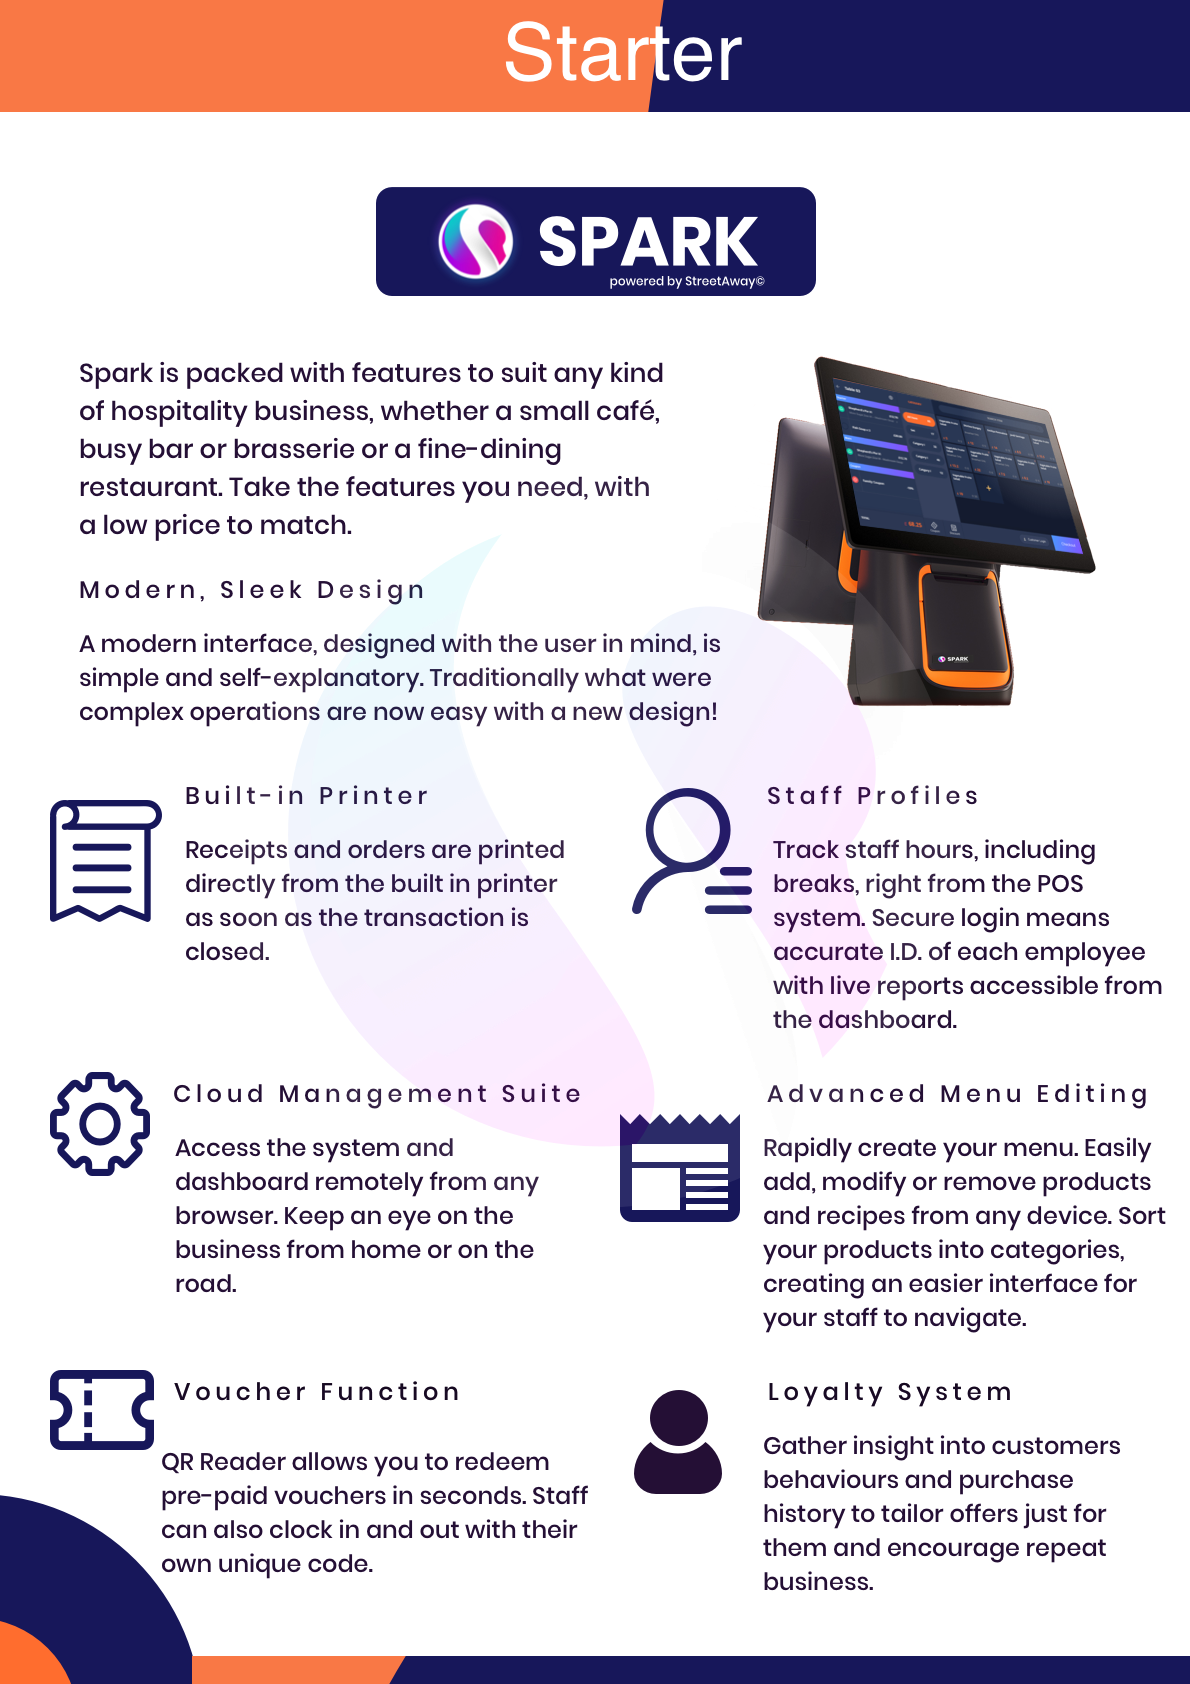 spark starter bundle summary of features